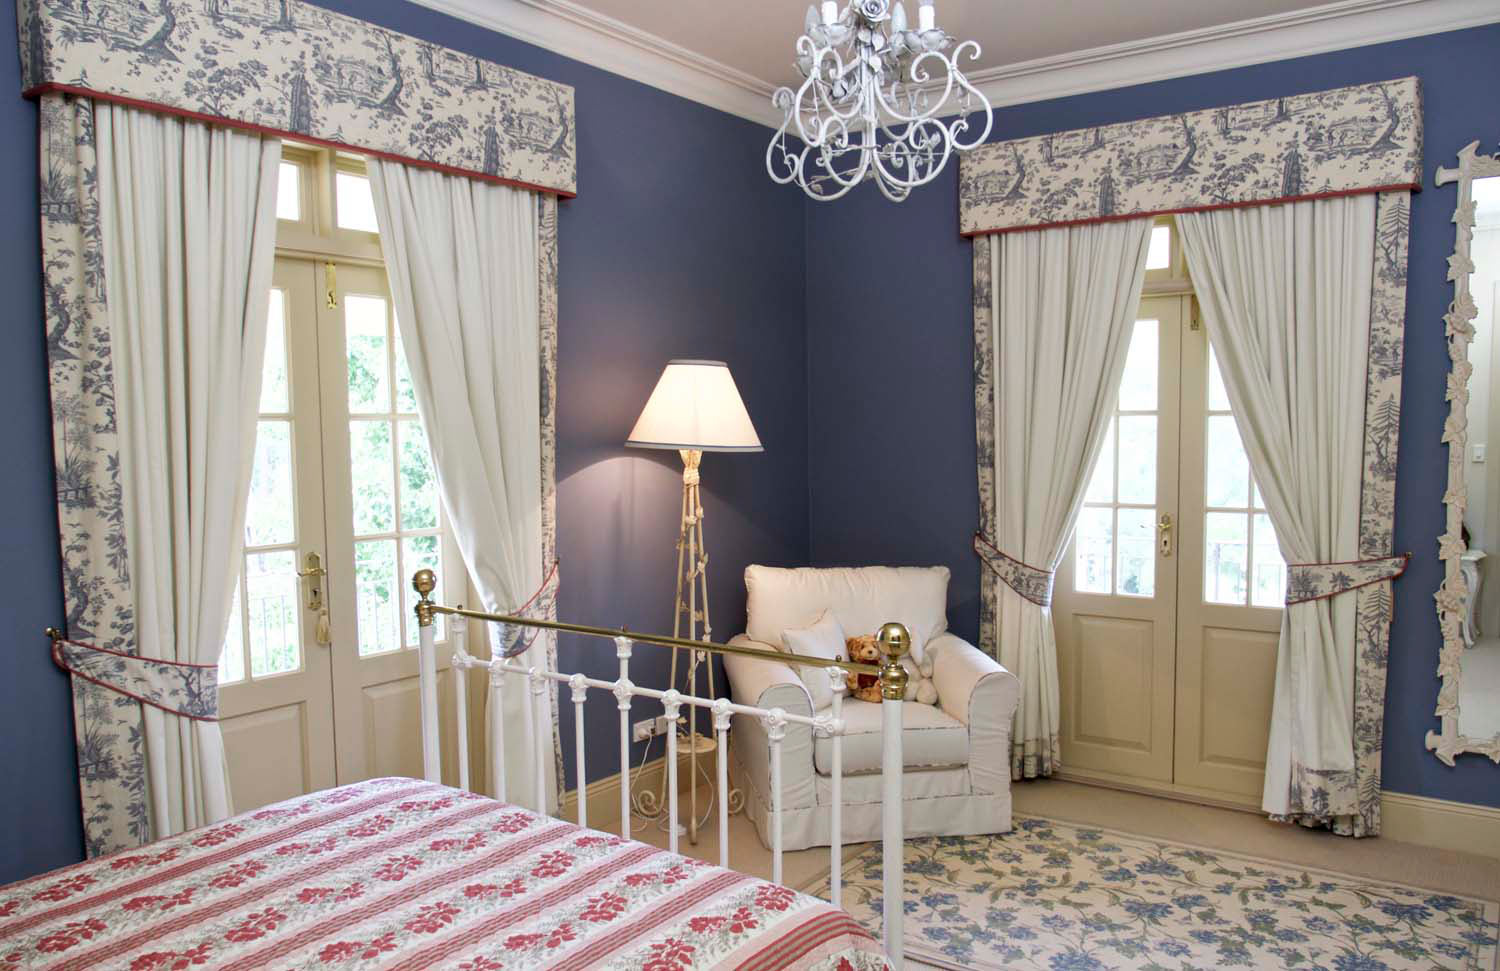 14 French bedroom interior design